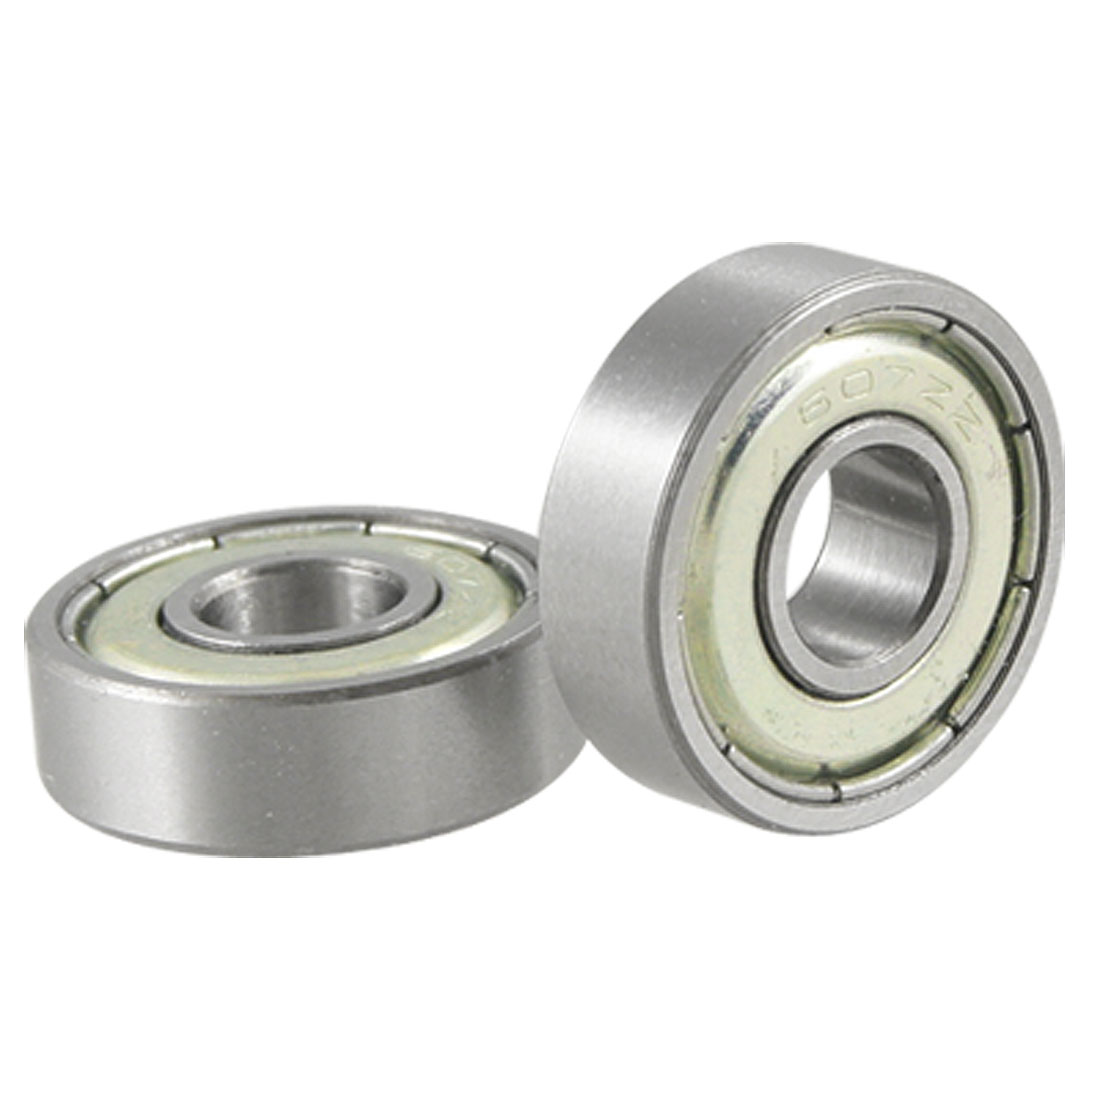 2 Pcs 7 x 19 x 6 607ZZ Double Shielded Deep Groove Ball Bearings